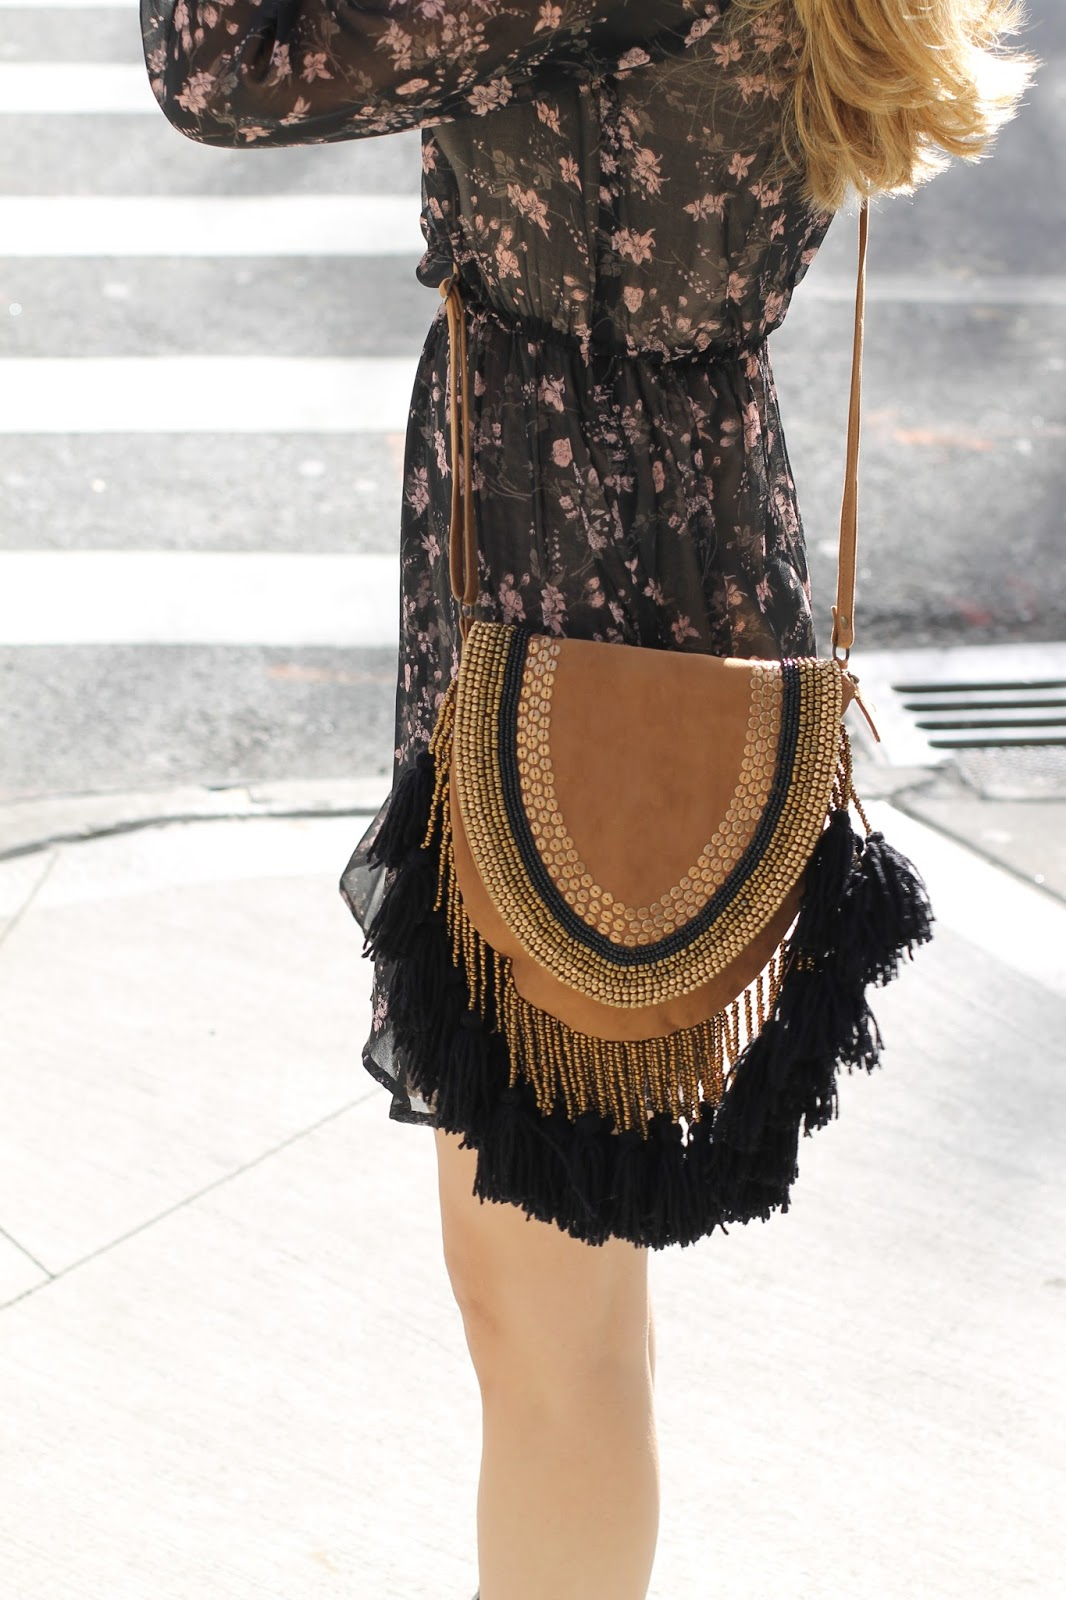 shopbop ONE by tan fringe saddle bag